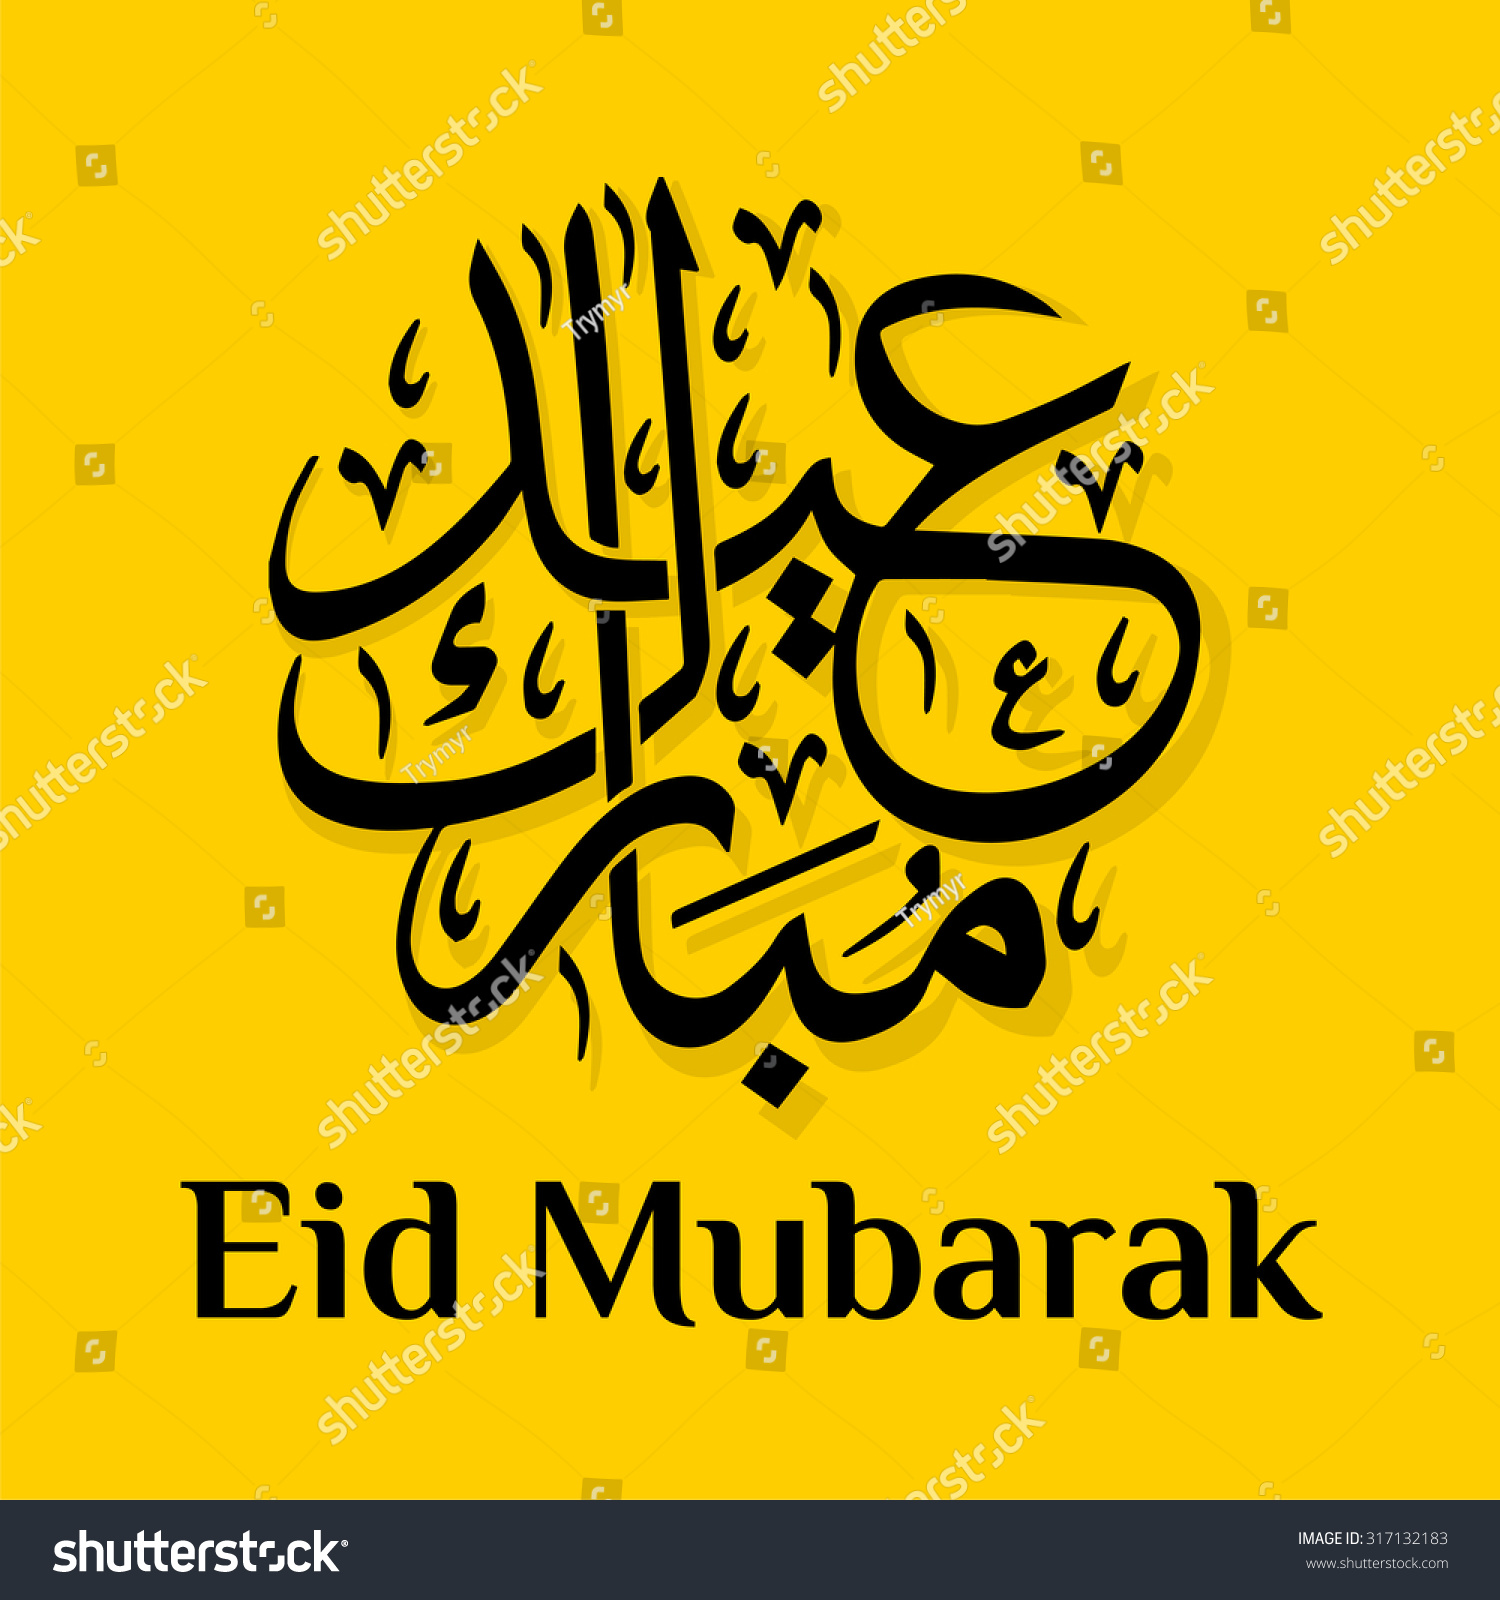 Eid mubarak arabic calligraphy on yellow stock vector